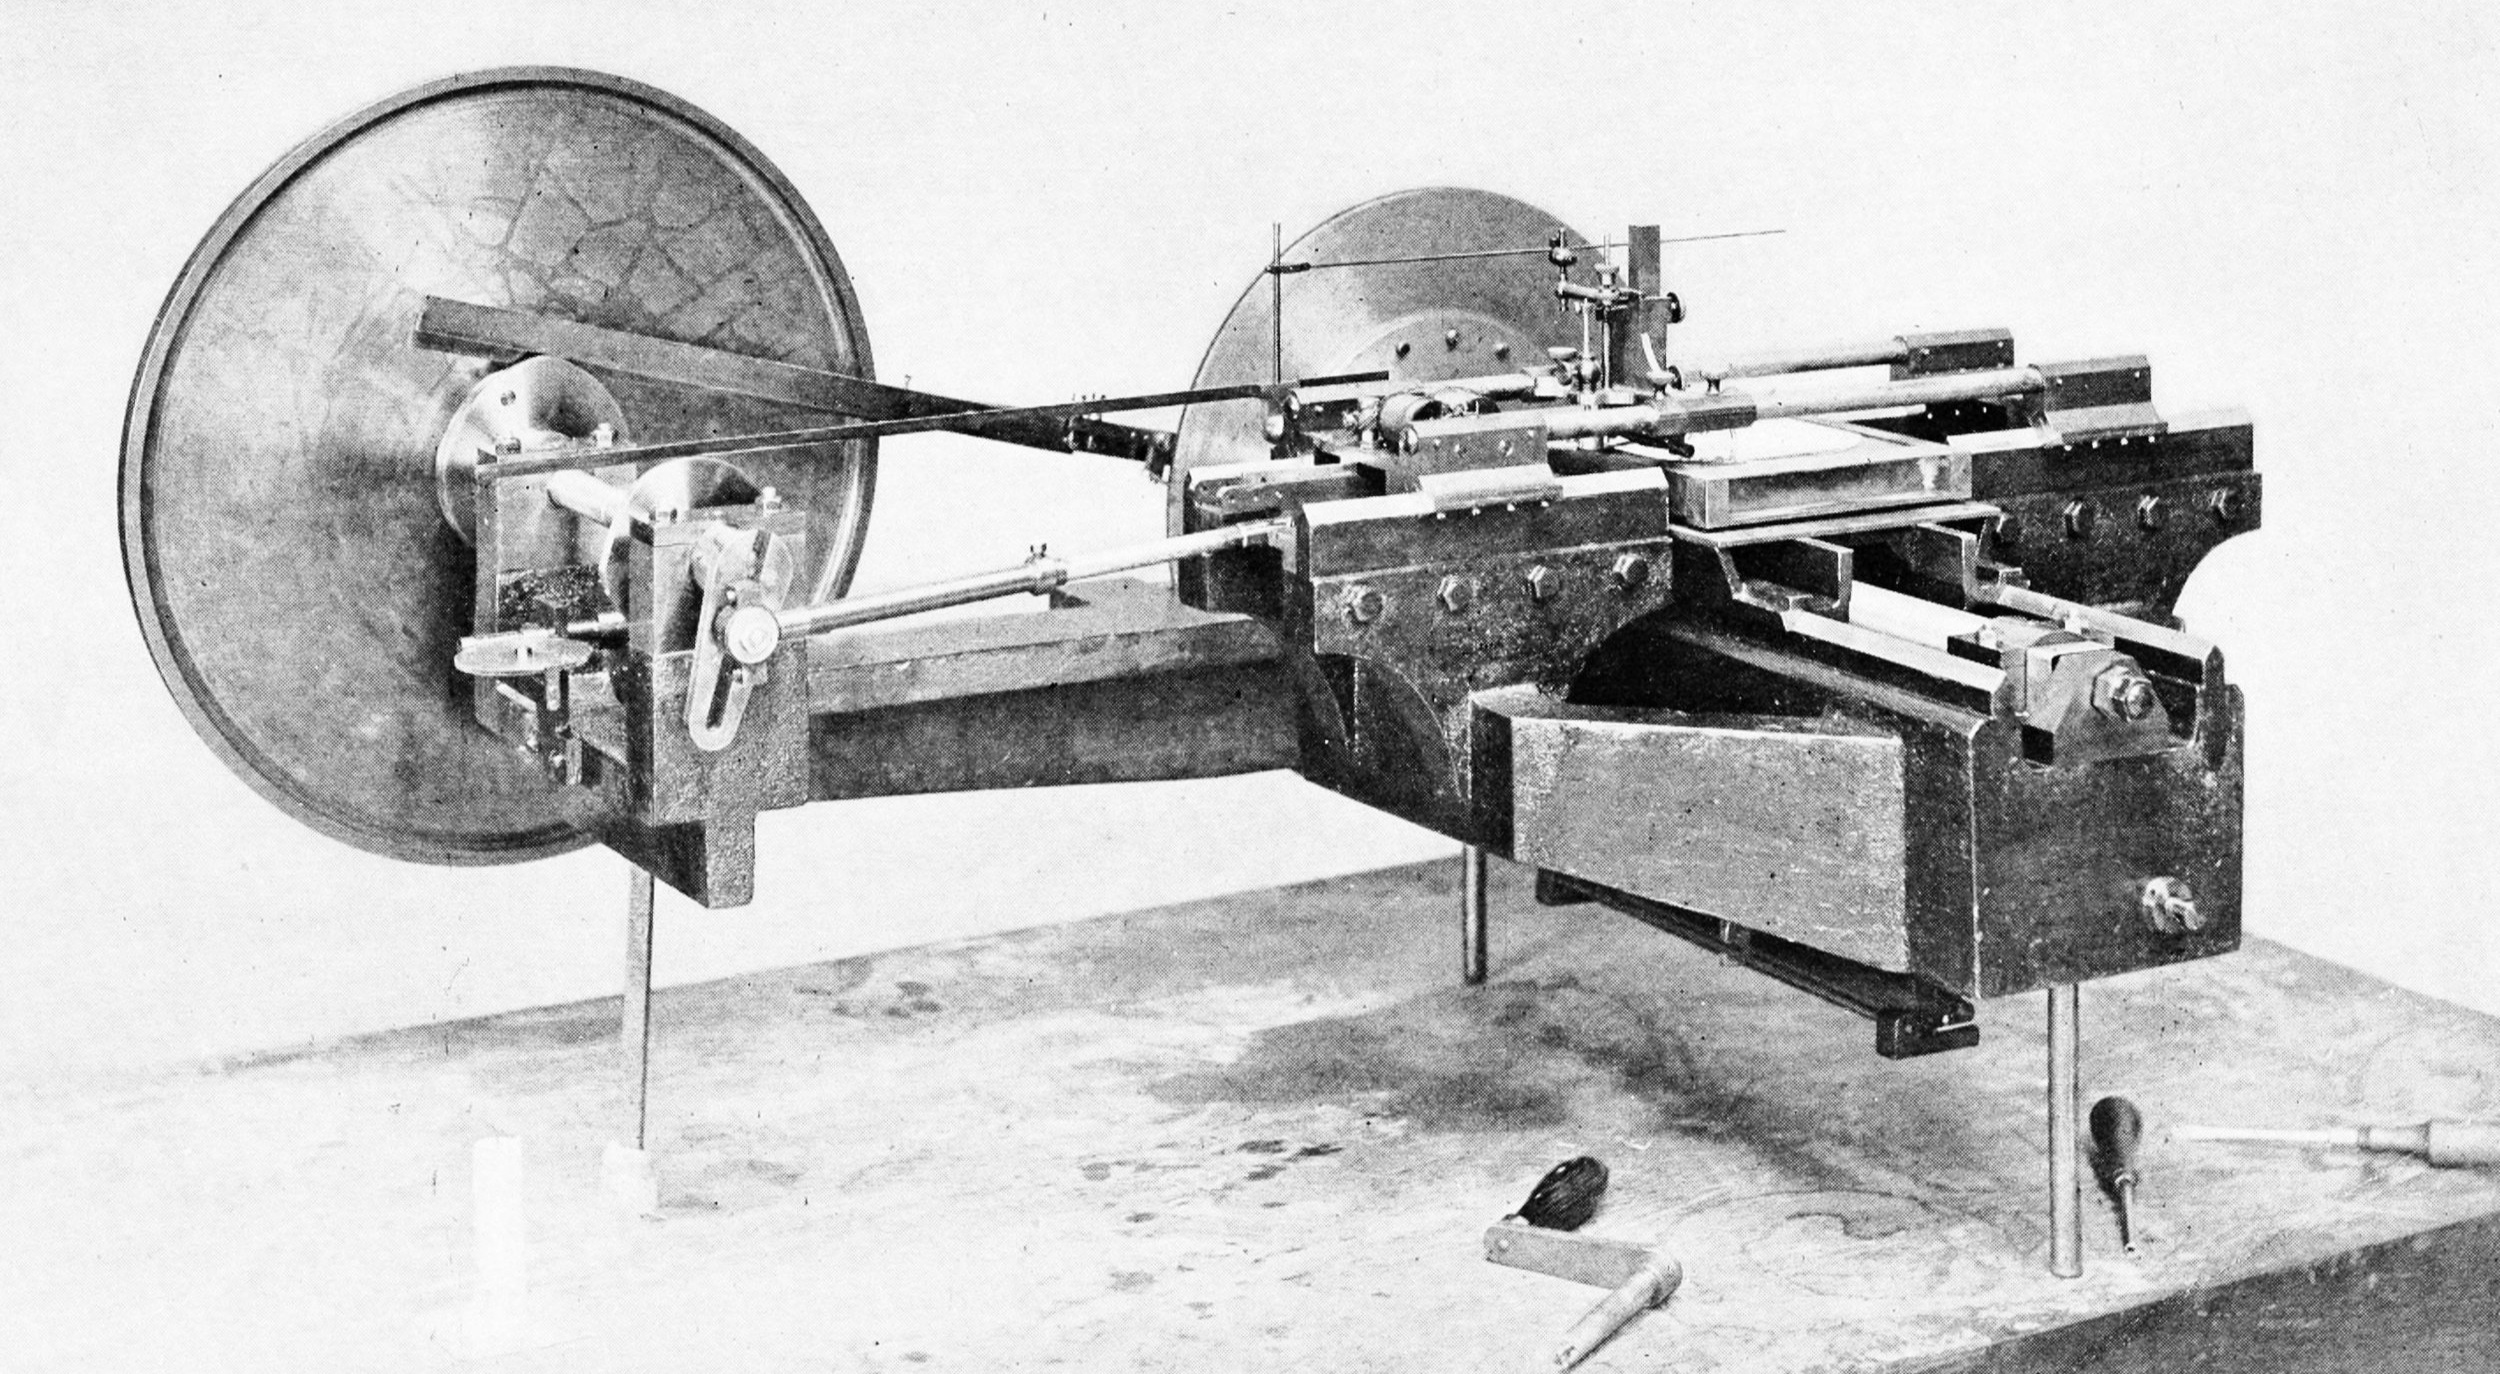 FIGURE 1.   (a)  Henry Rowland's ruling engine allowed him to make precision diffraction gratings that were in high demand worldwide. Courtesy of Wikimedia Commons.